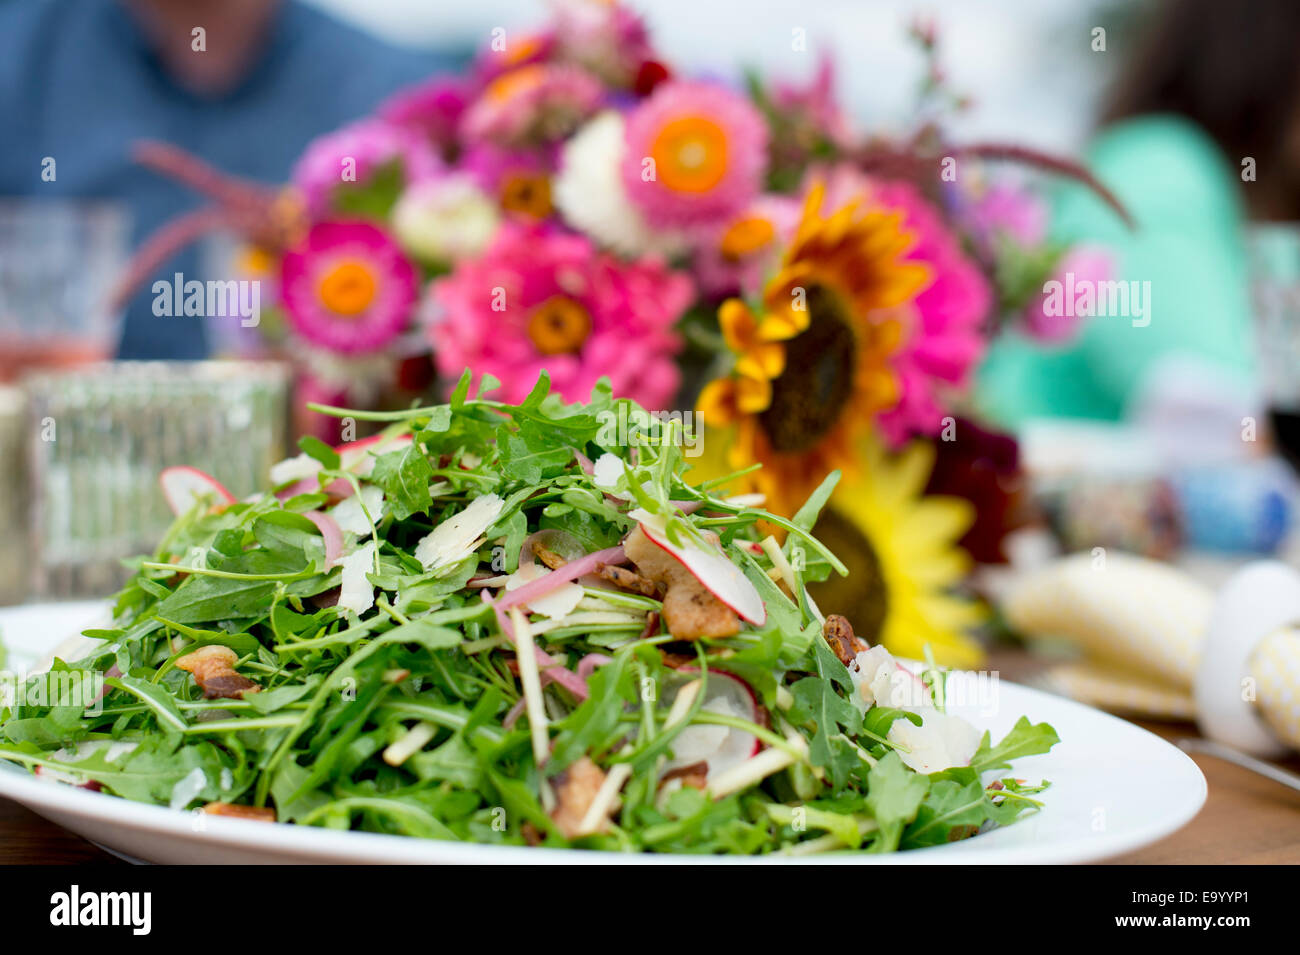 Fresh salad on serving plate, ready to be served - Stock Image